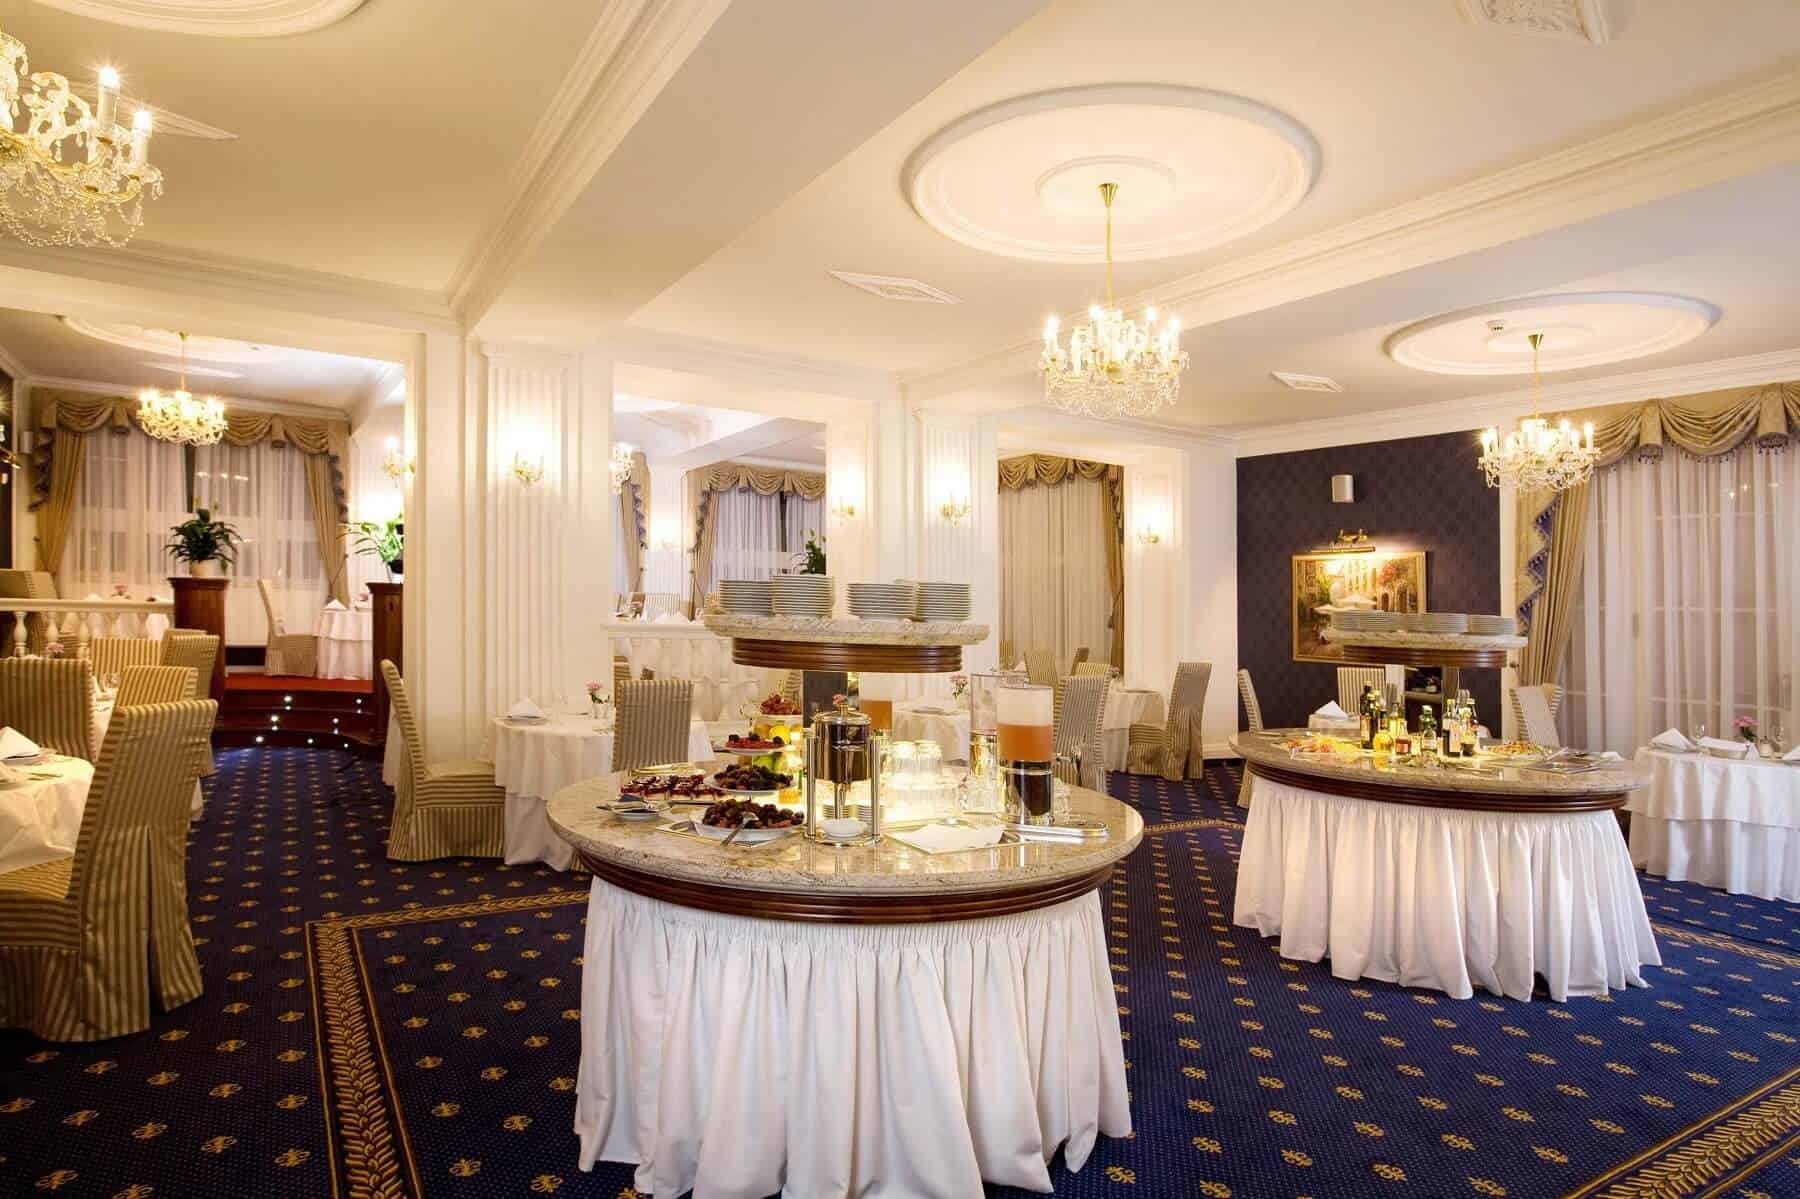 Hotel Imperial - Restaurant Paris